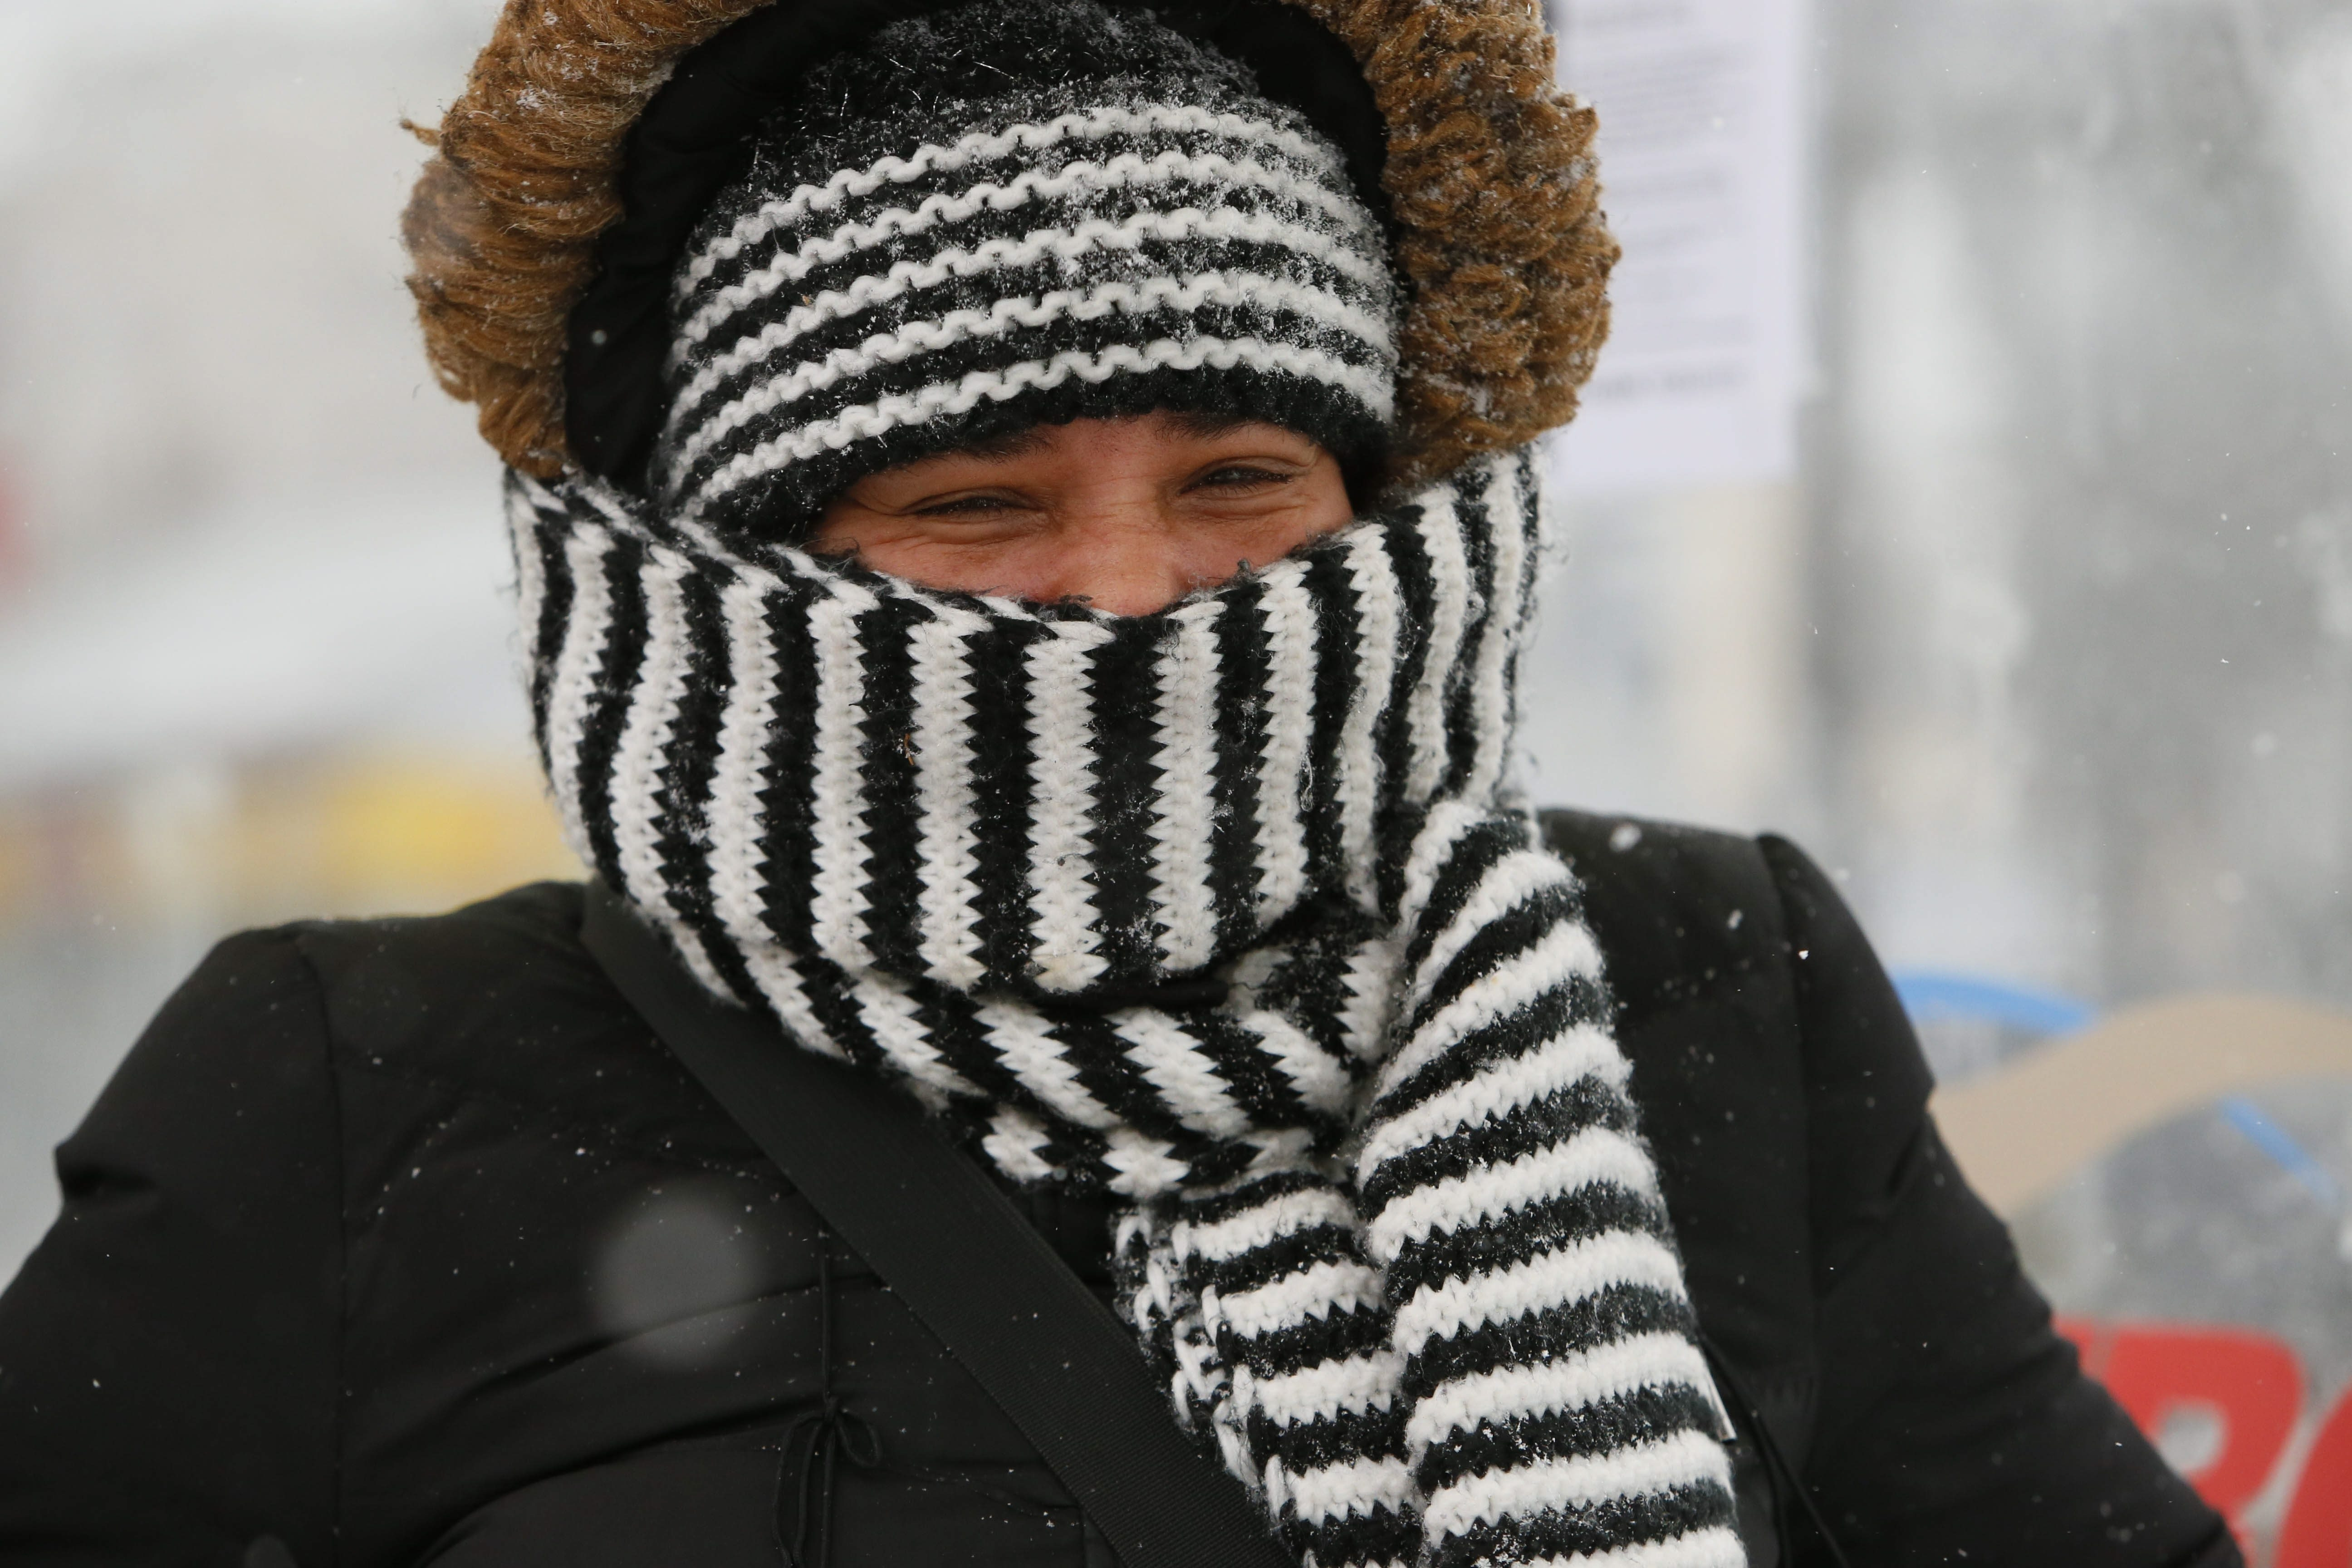 Tanya Ruffins of Buffalo is bundled up as she waits for a bus on Delaware Avenue on her way to work Monday.